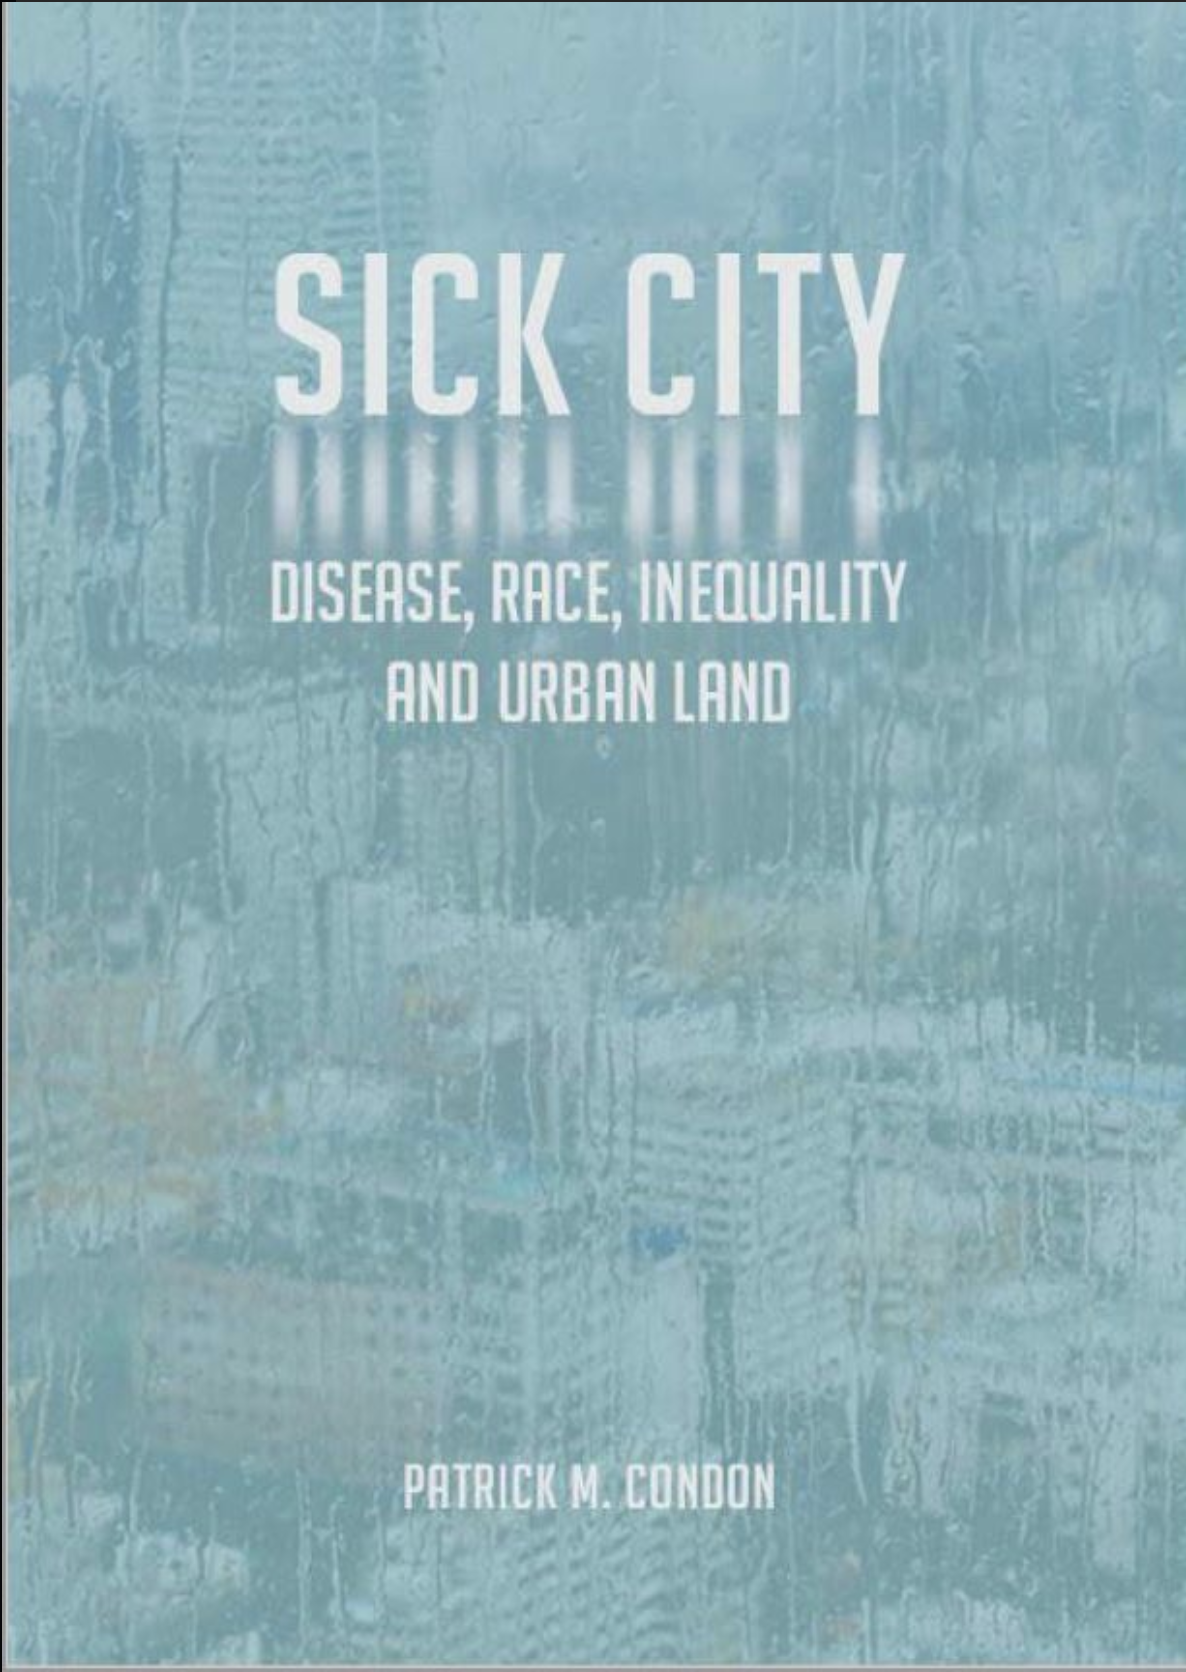 The Pandemic, Inequality, Housing Affordability, and Urban Land